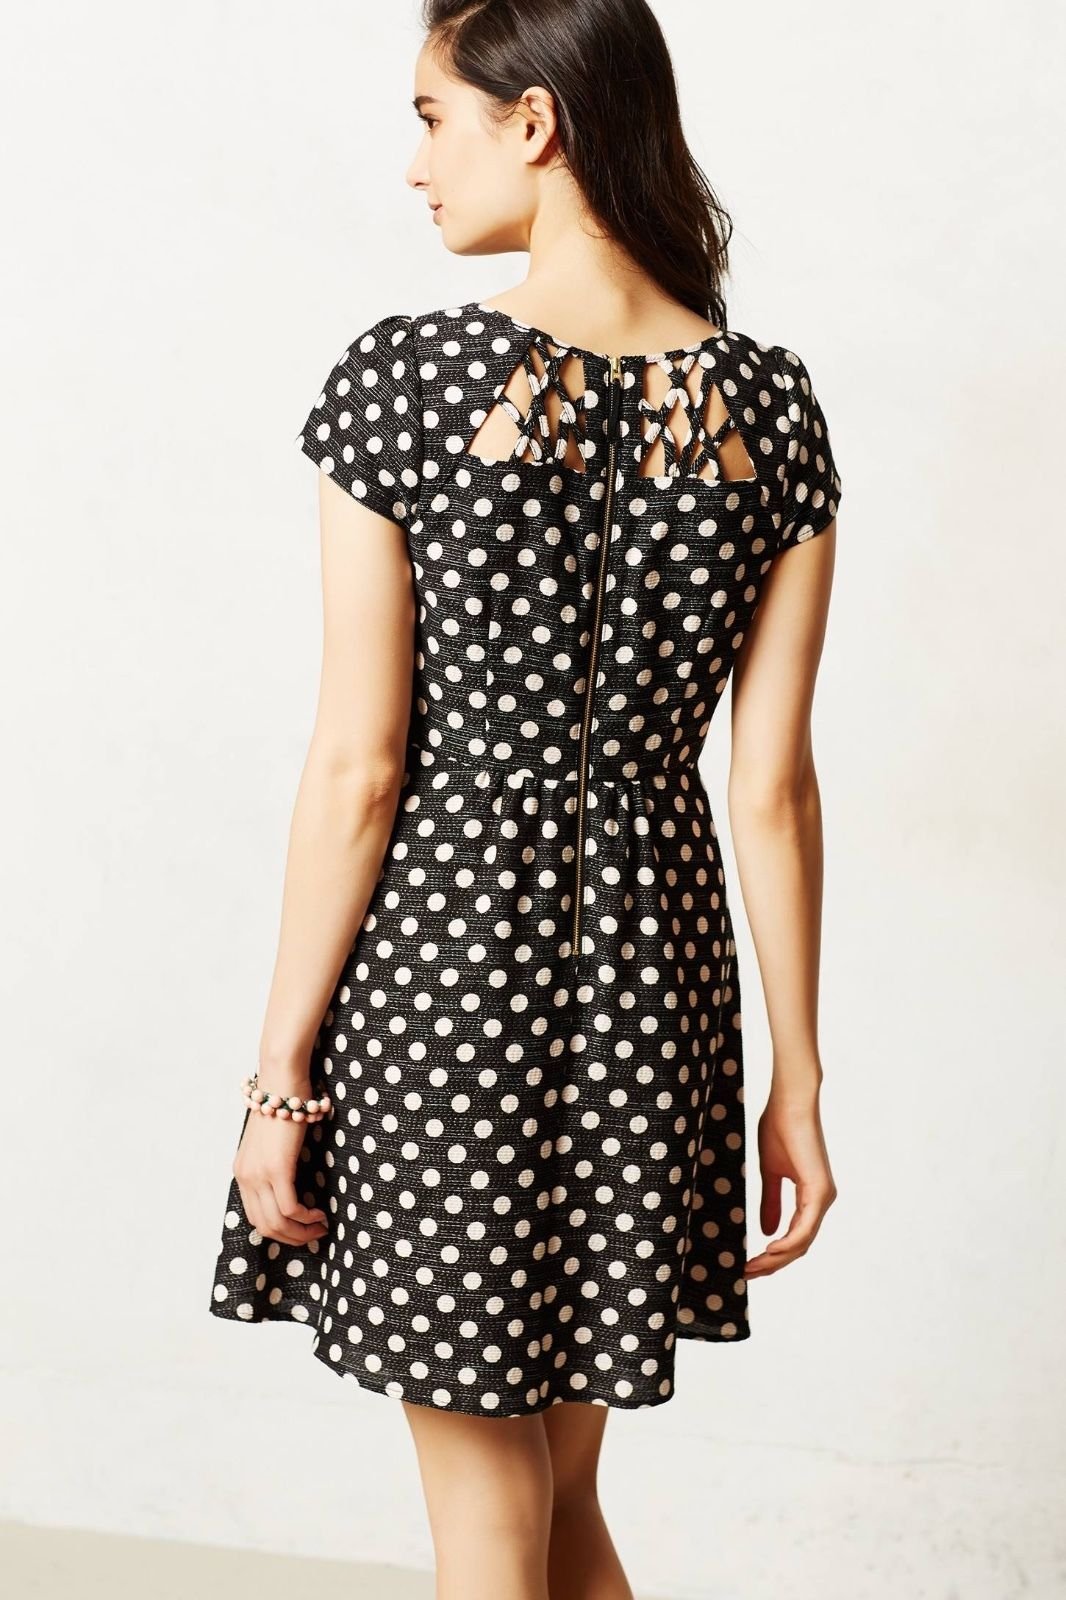 Anthropologie Maeve Nikola Lattice Dress Polka Dot Size 12  ASO Glee Quinn